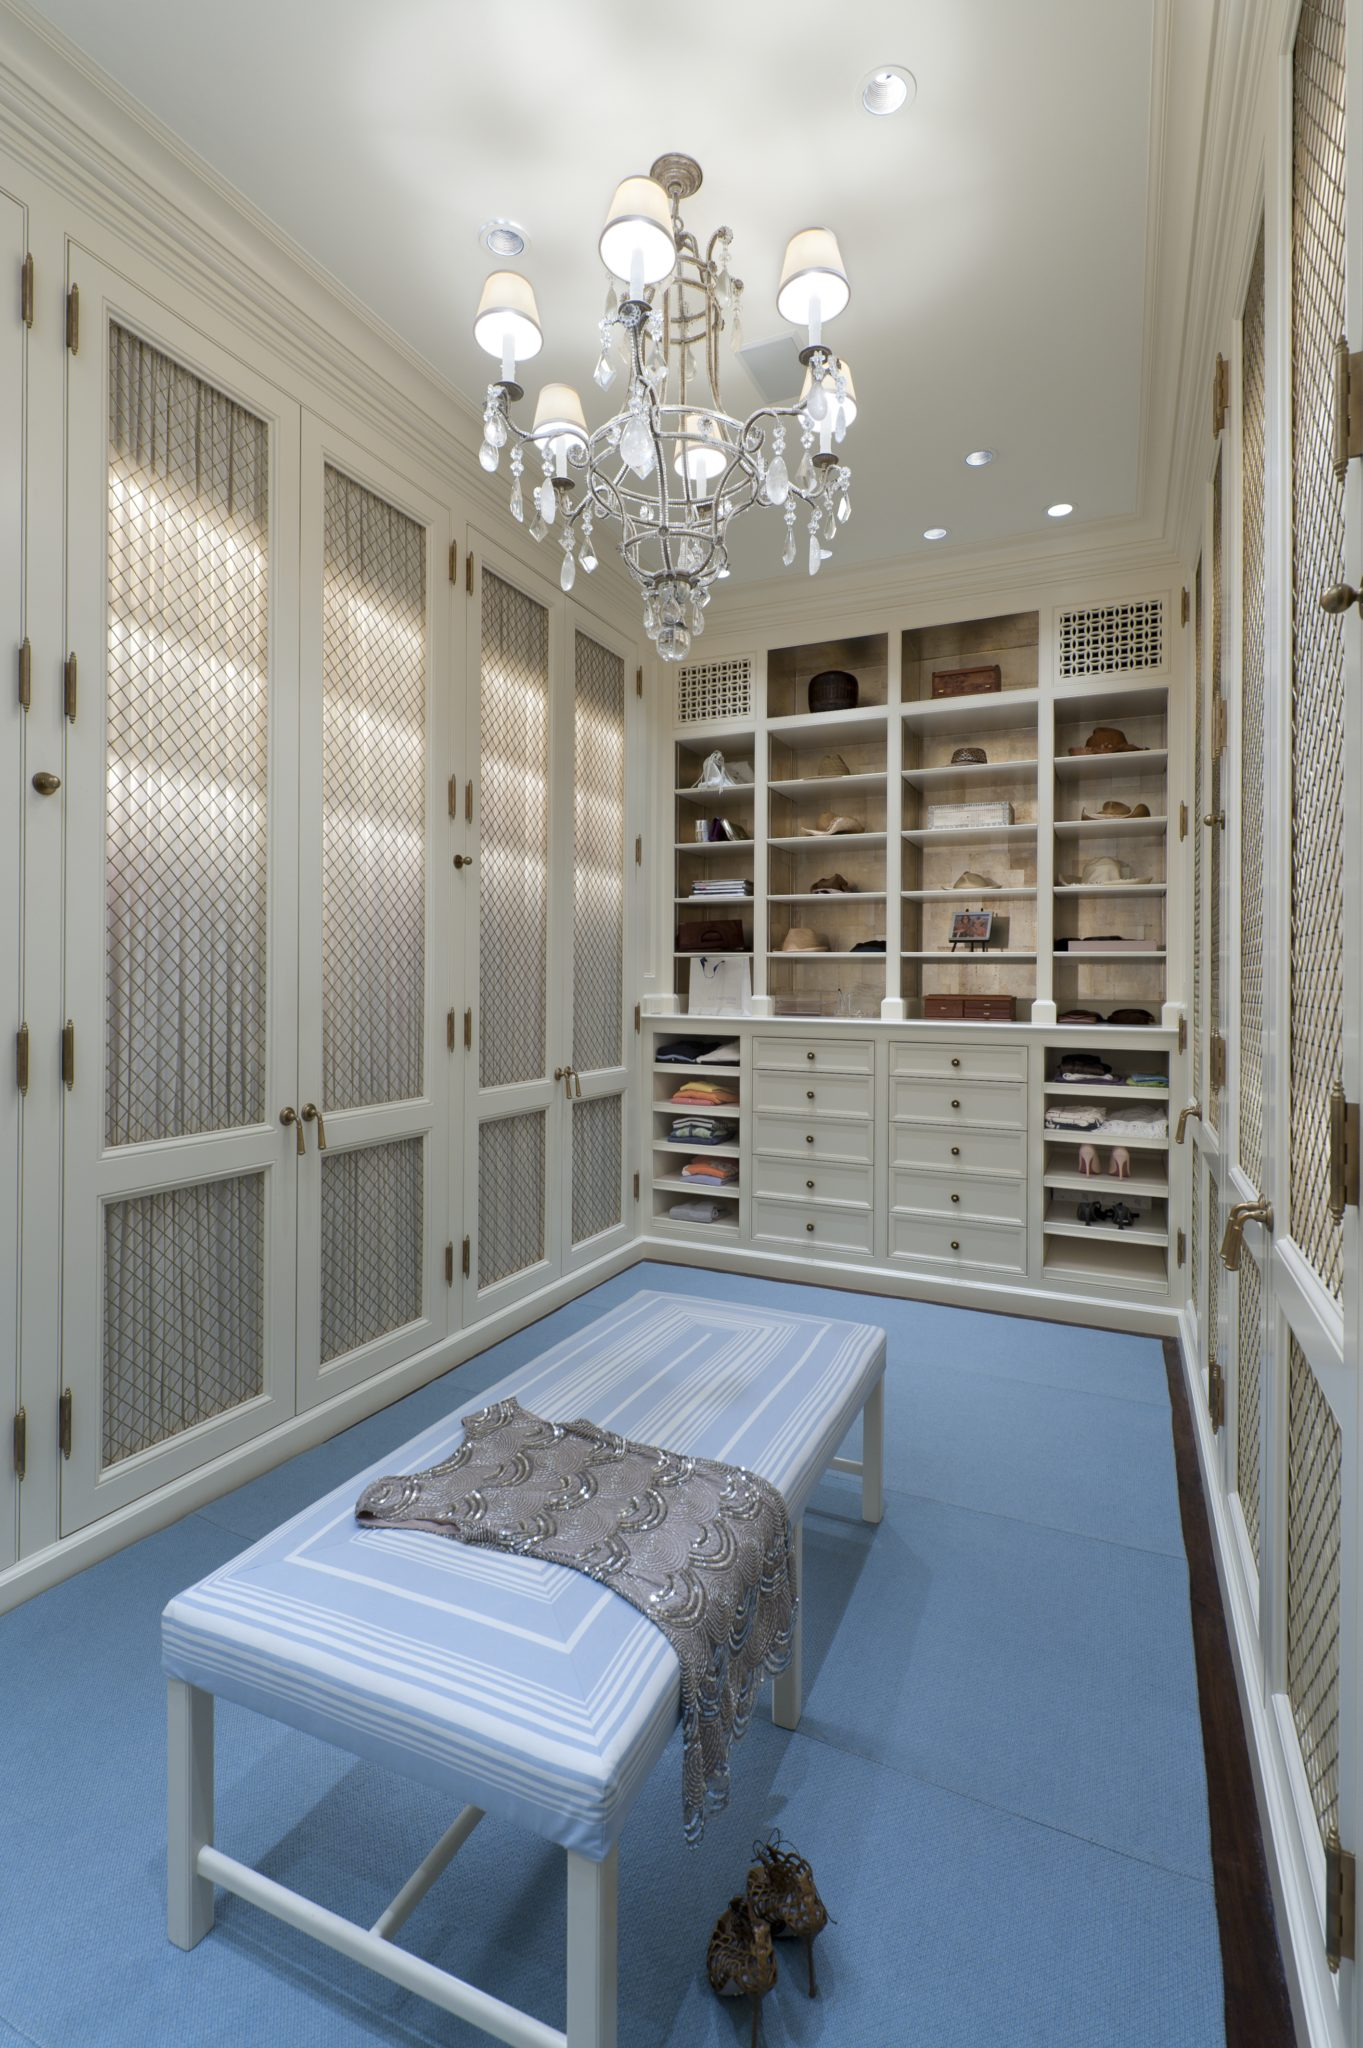 Interior Architecture of Miami Indian Creek Home featured in Architectural Digest - Her Closet by Brian O'Keefe Architect